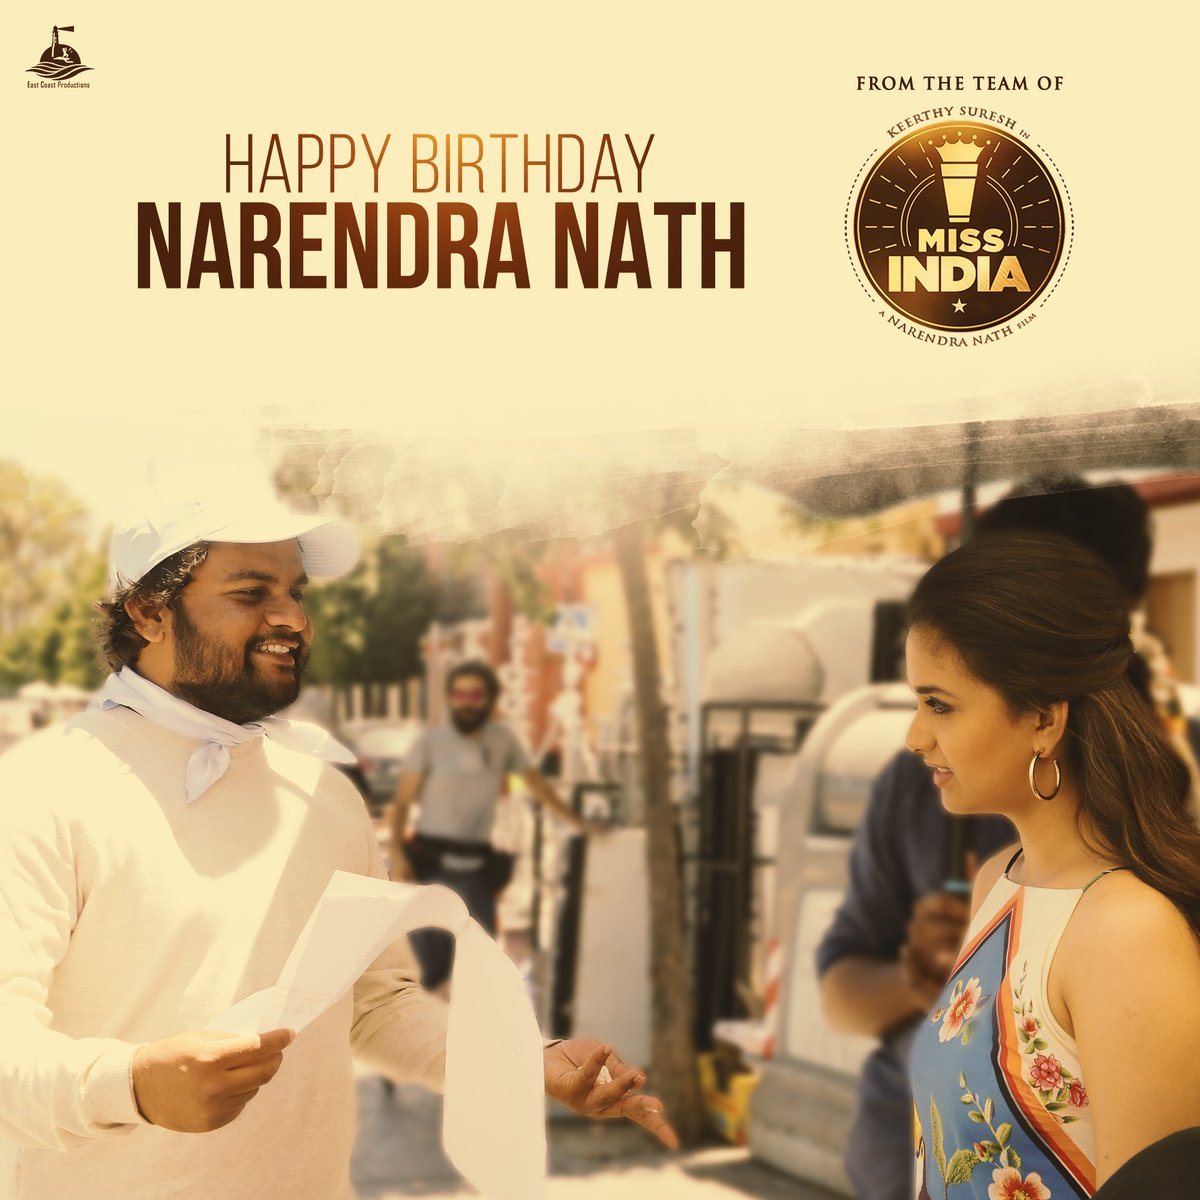 Happy Birthday @NARENcloseup Wishing you a blessed year ahead 😊❤️  #MissIndia https://t.co/9em7FyDLA6